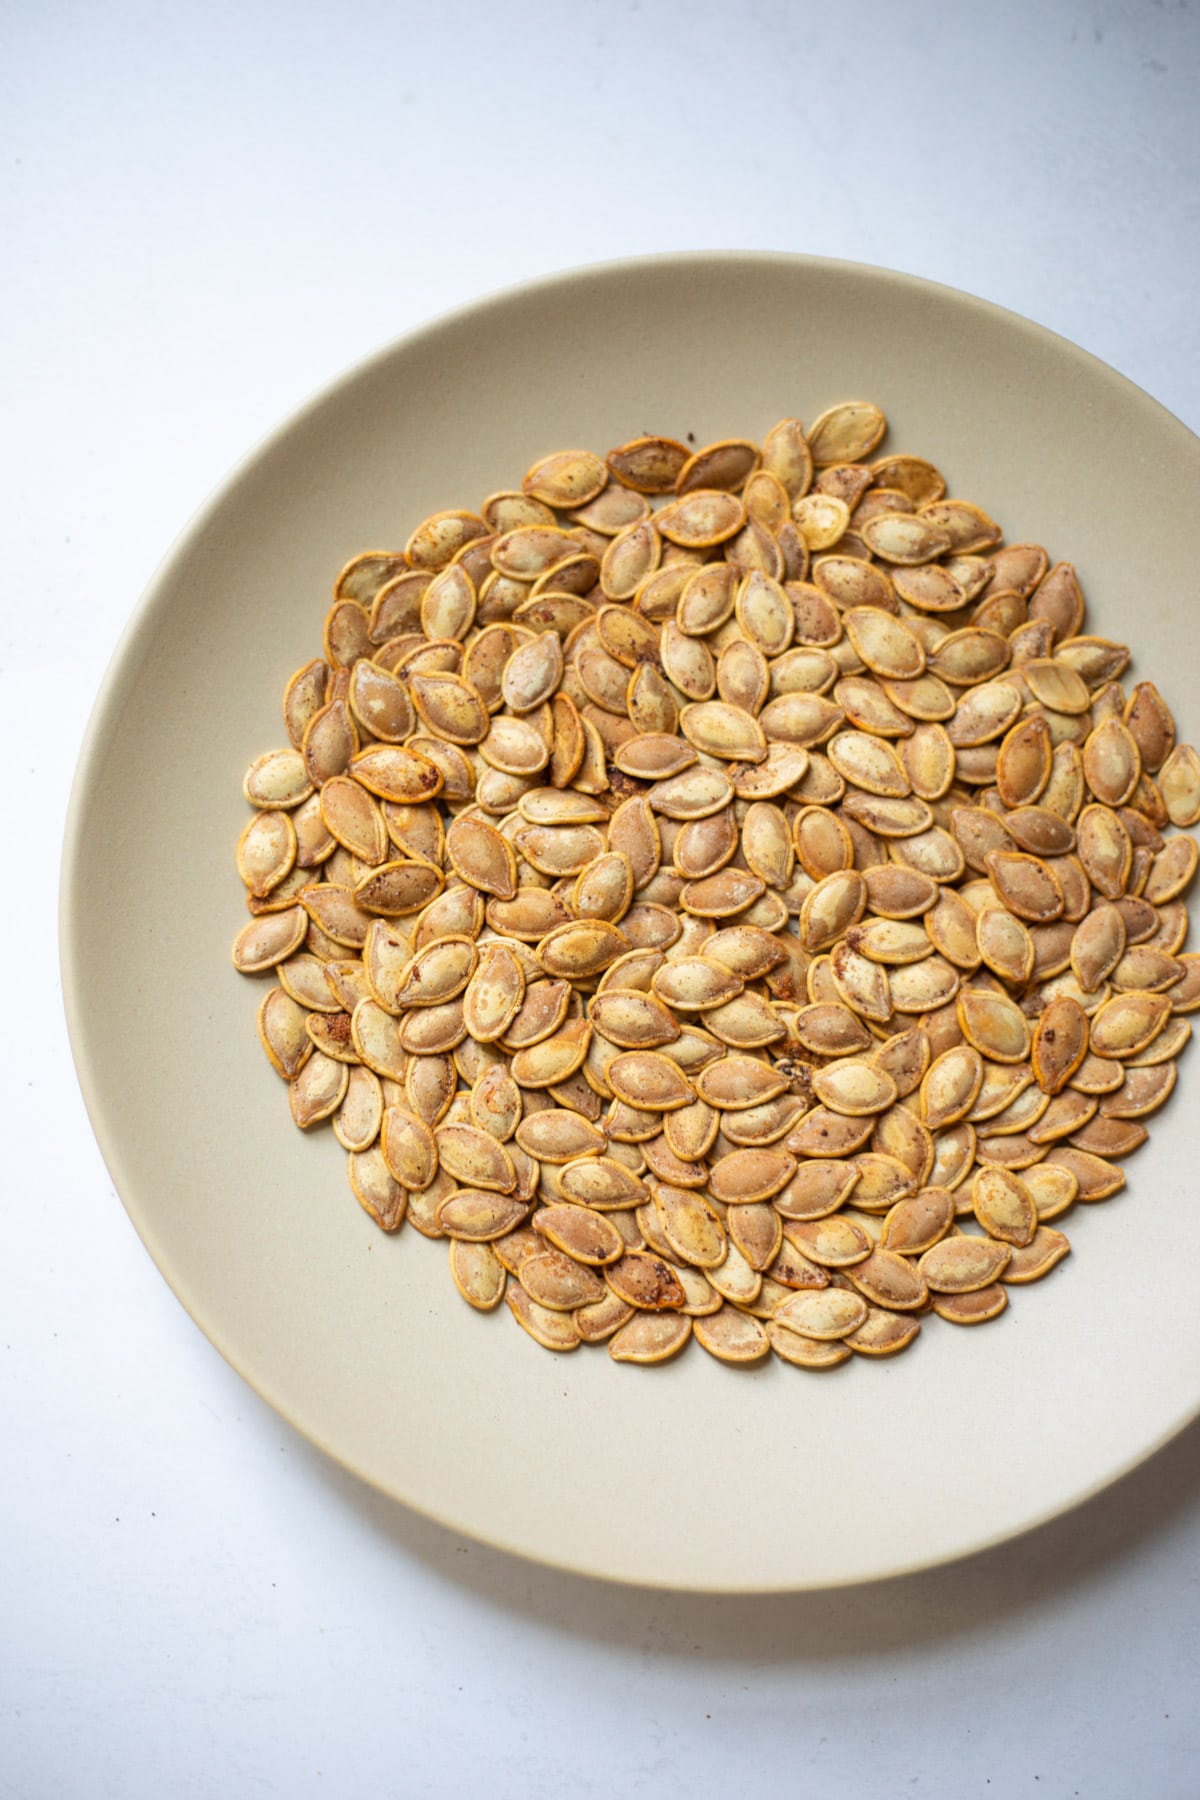 Roasted pumpkin seeds in a plate